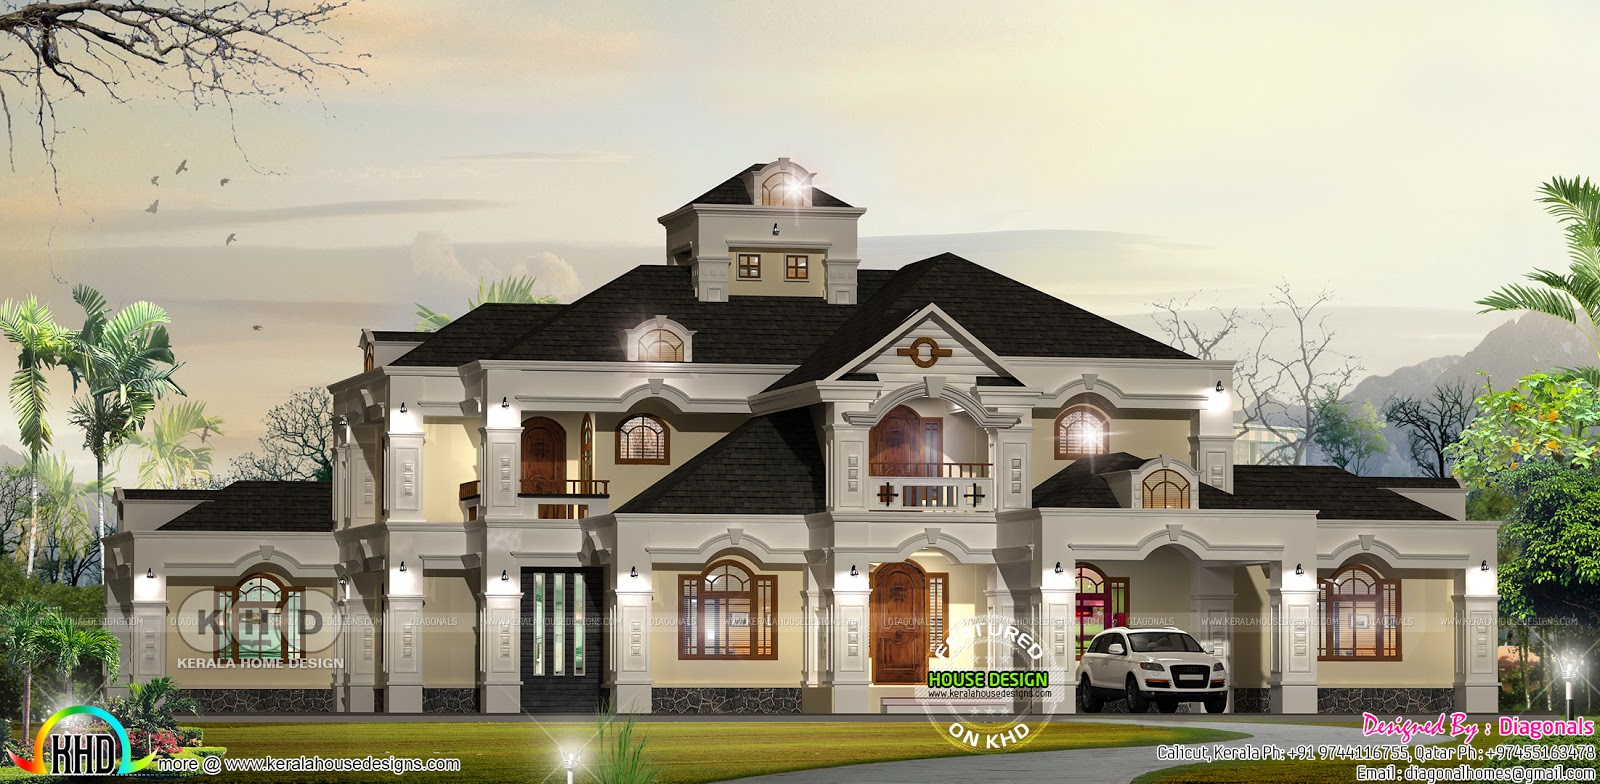 Big luxury colonial home design kerala home design and for Colonial luxury house plans